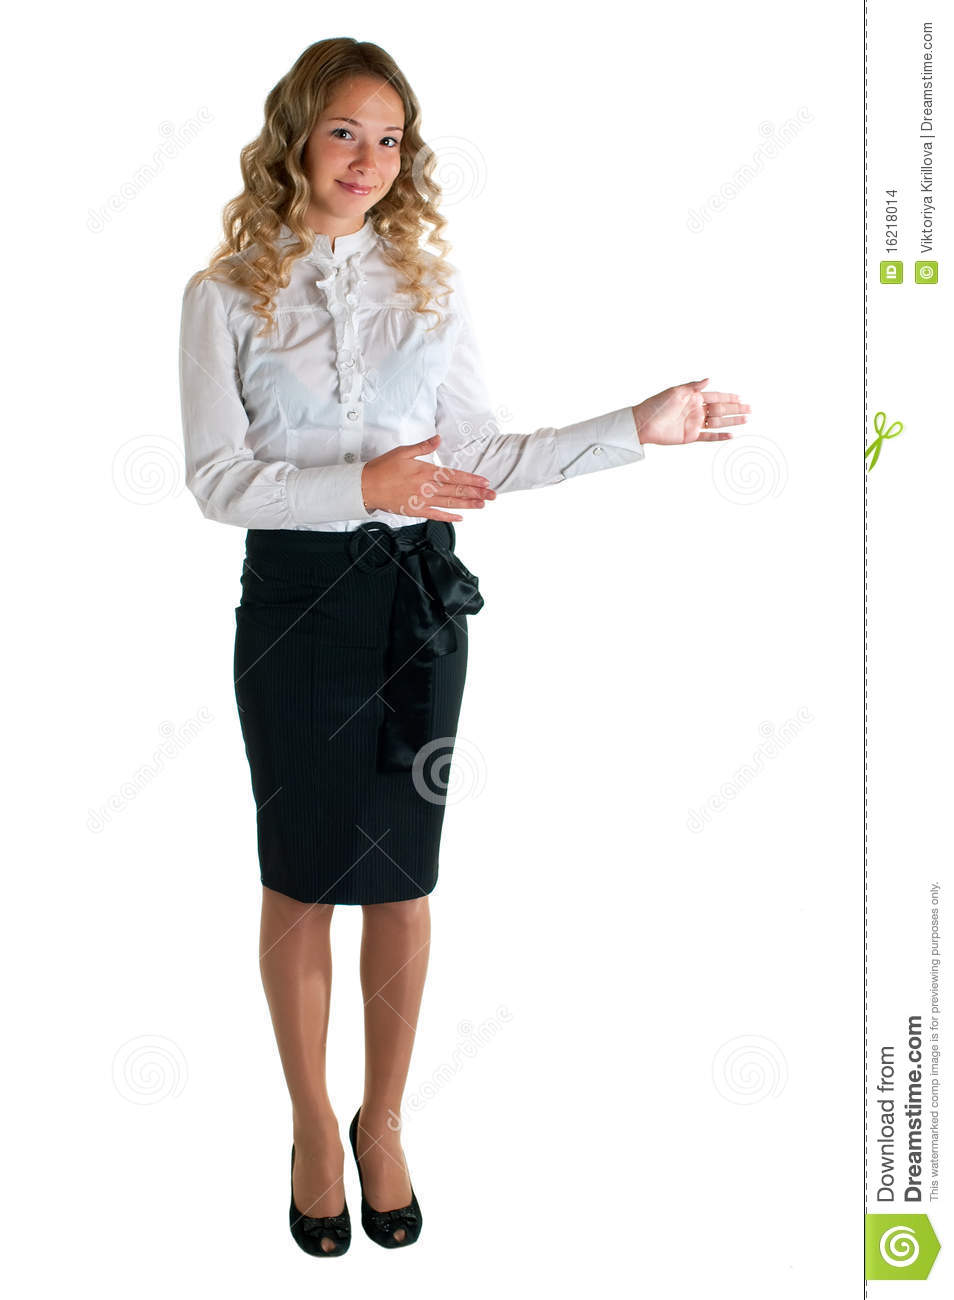 Girl In A White Shirt And Black Skirt Stock Images - Image 16218014